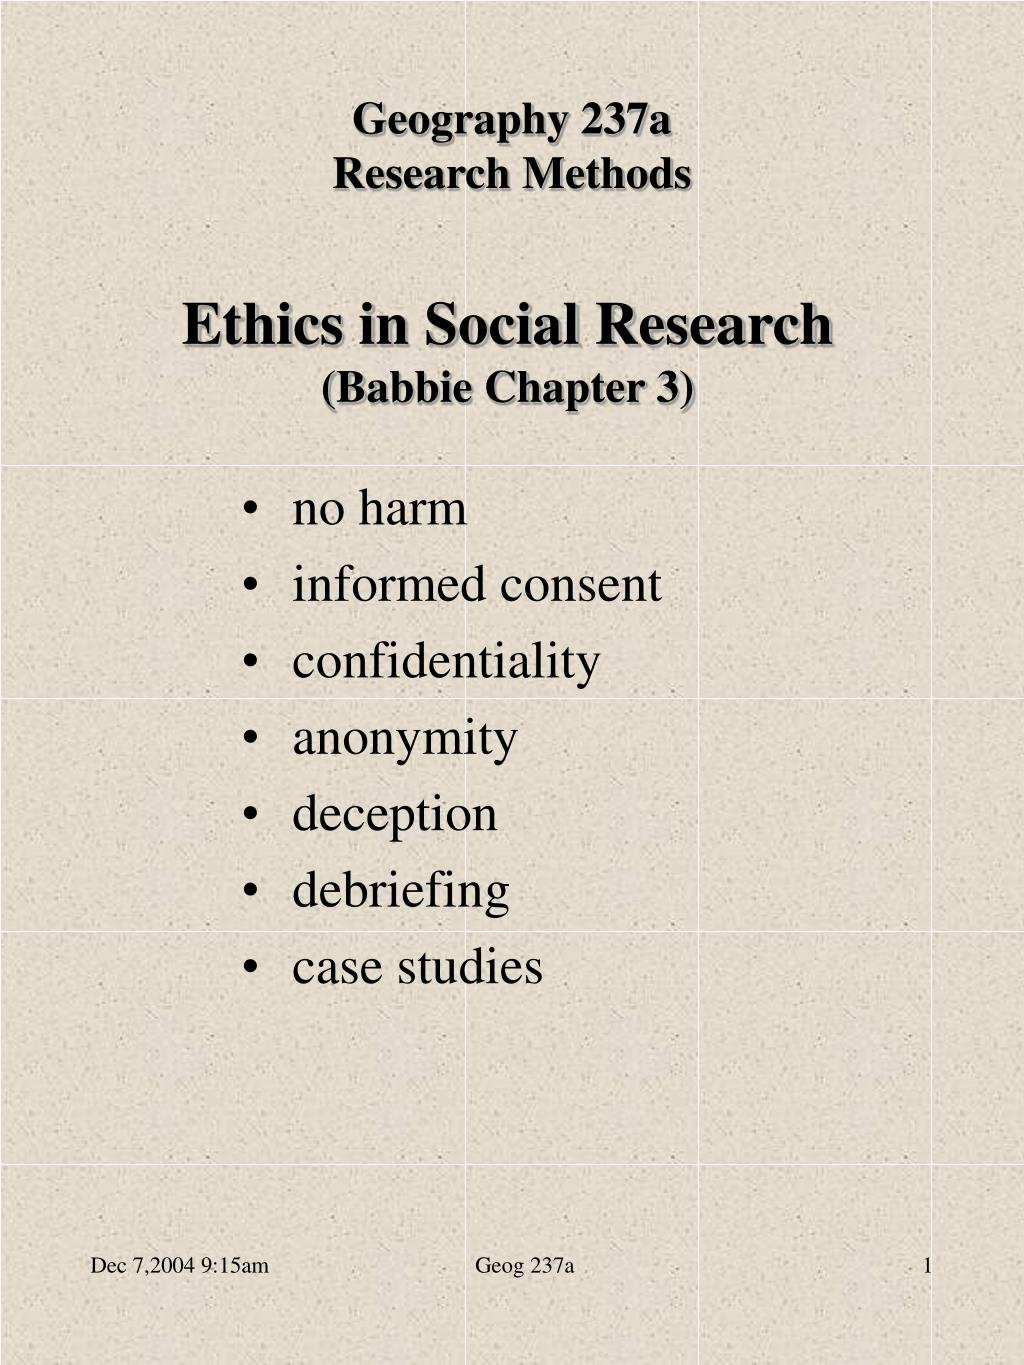 ethics in social research babbie chapter 3 l.